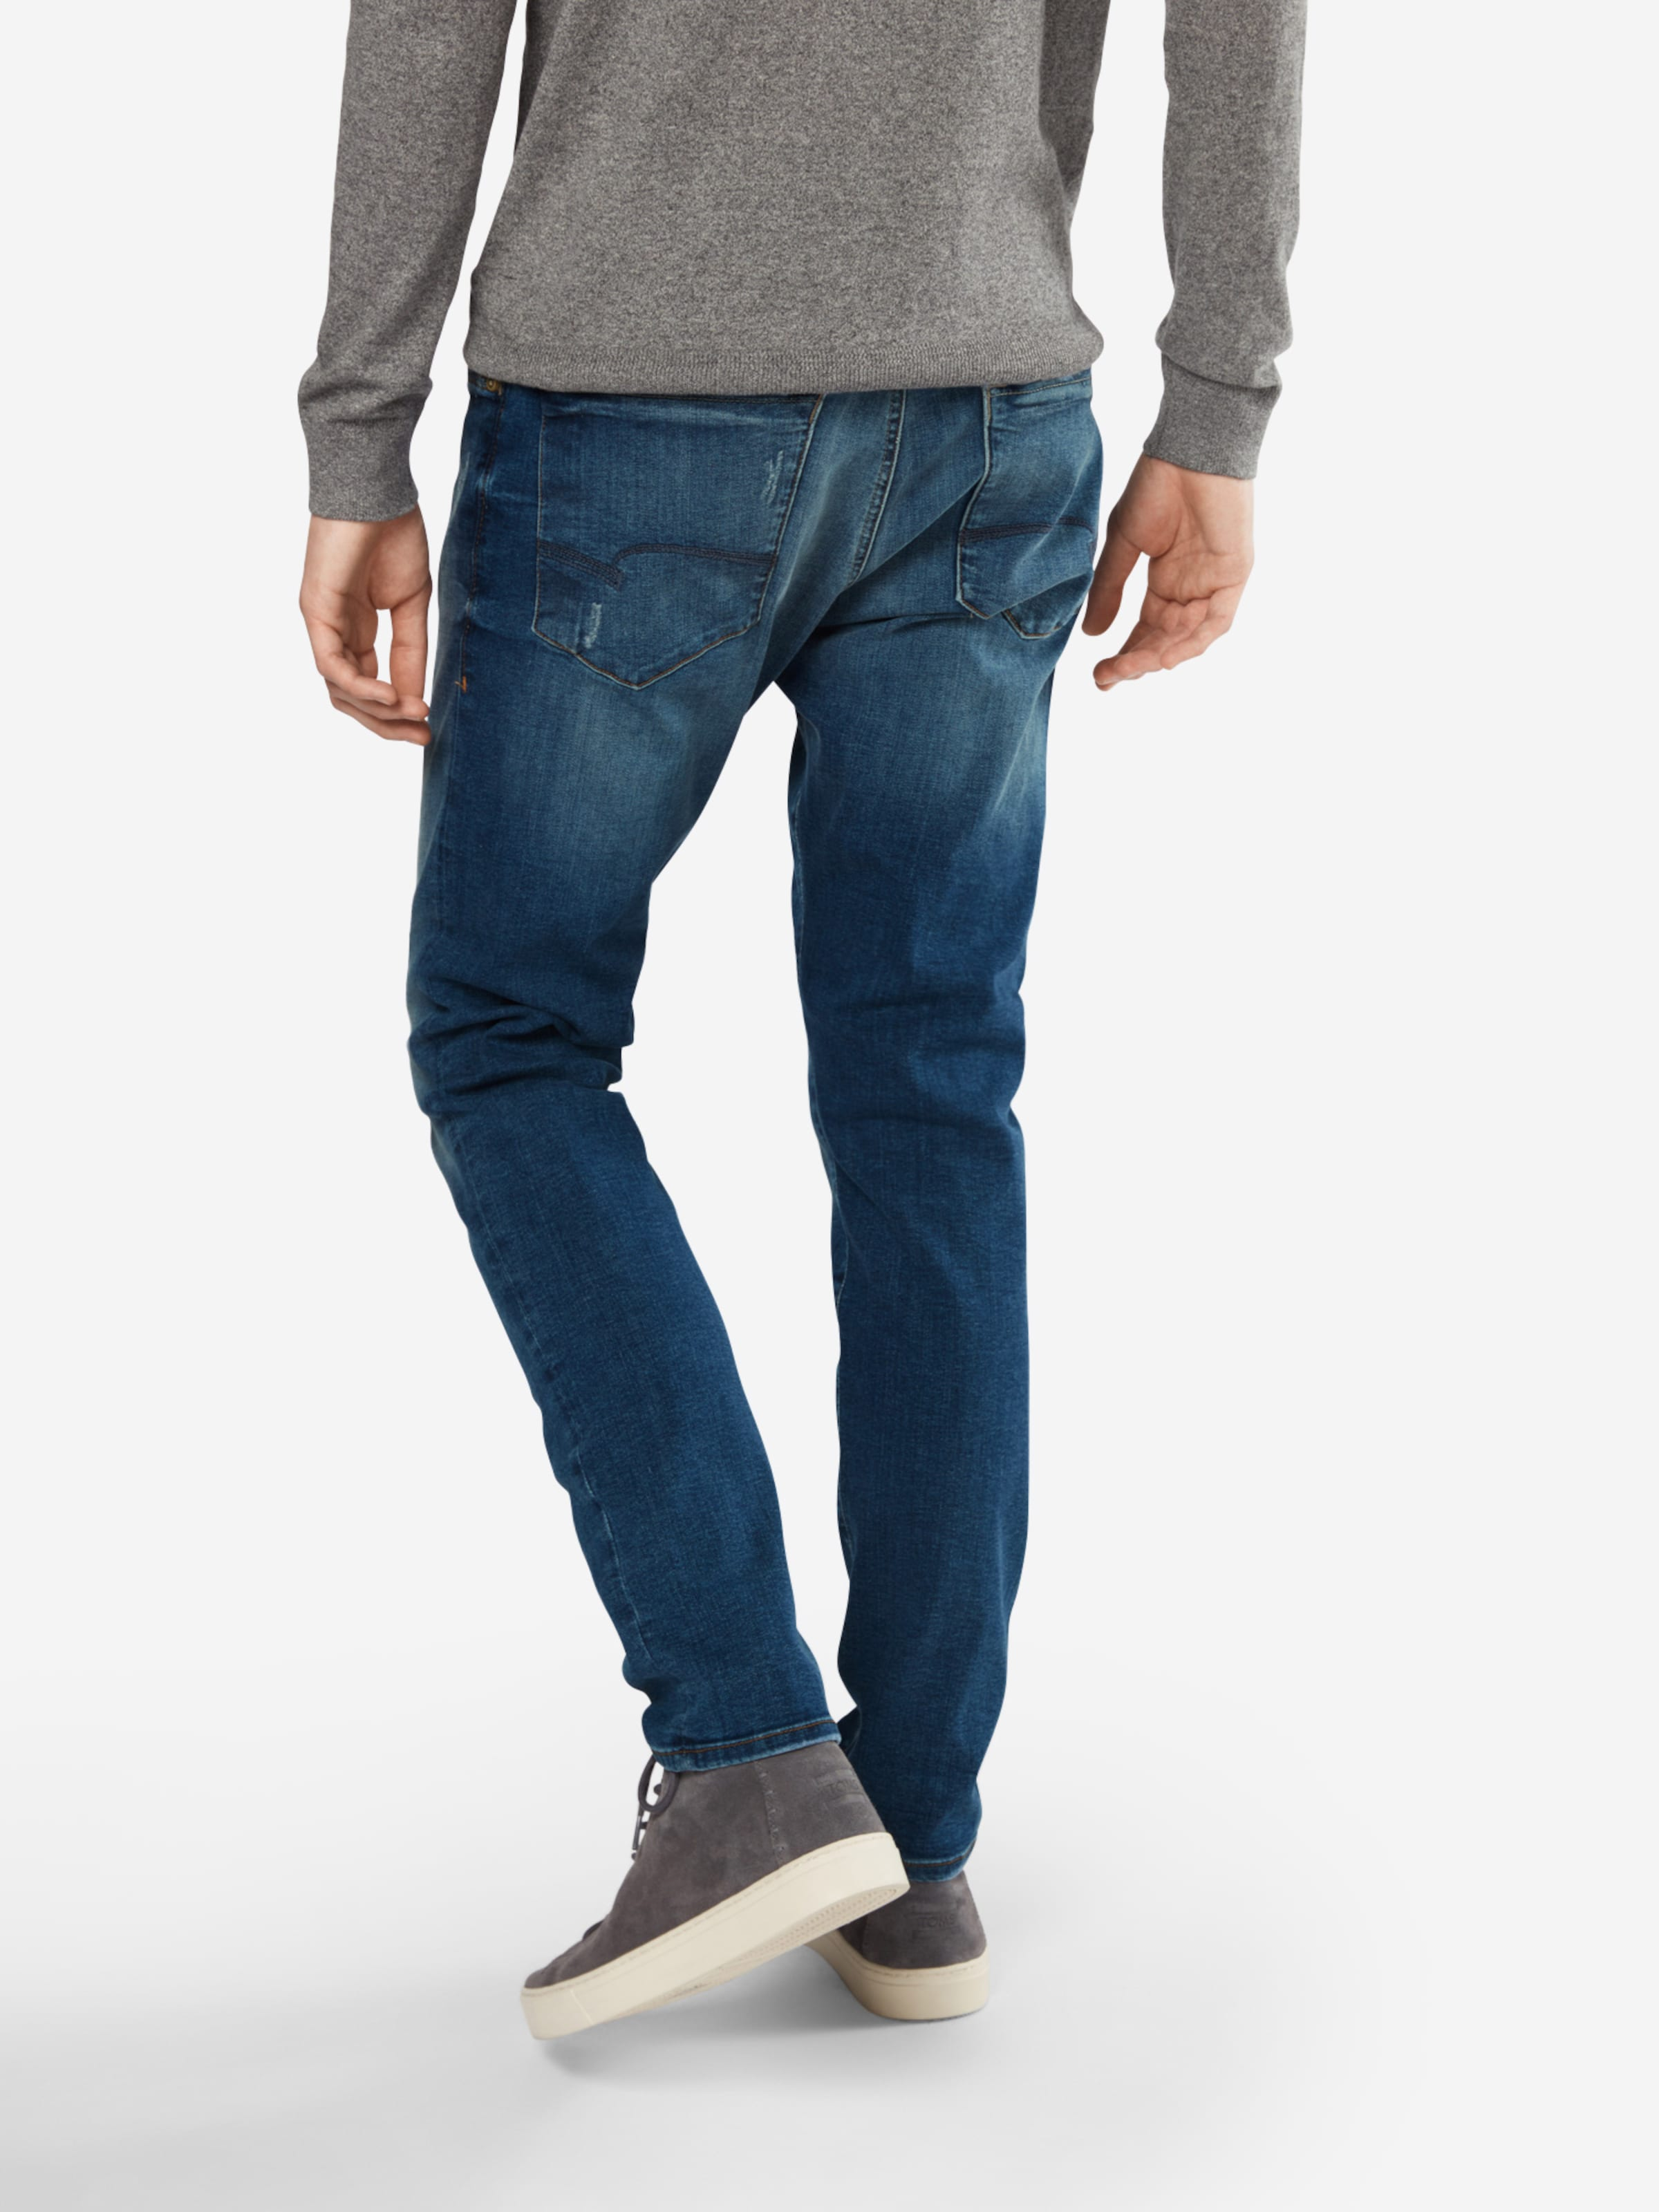 Mavi Bleu Jean Denim 'james' En MUzVpqS